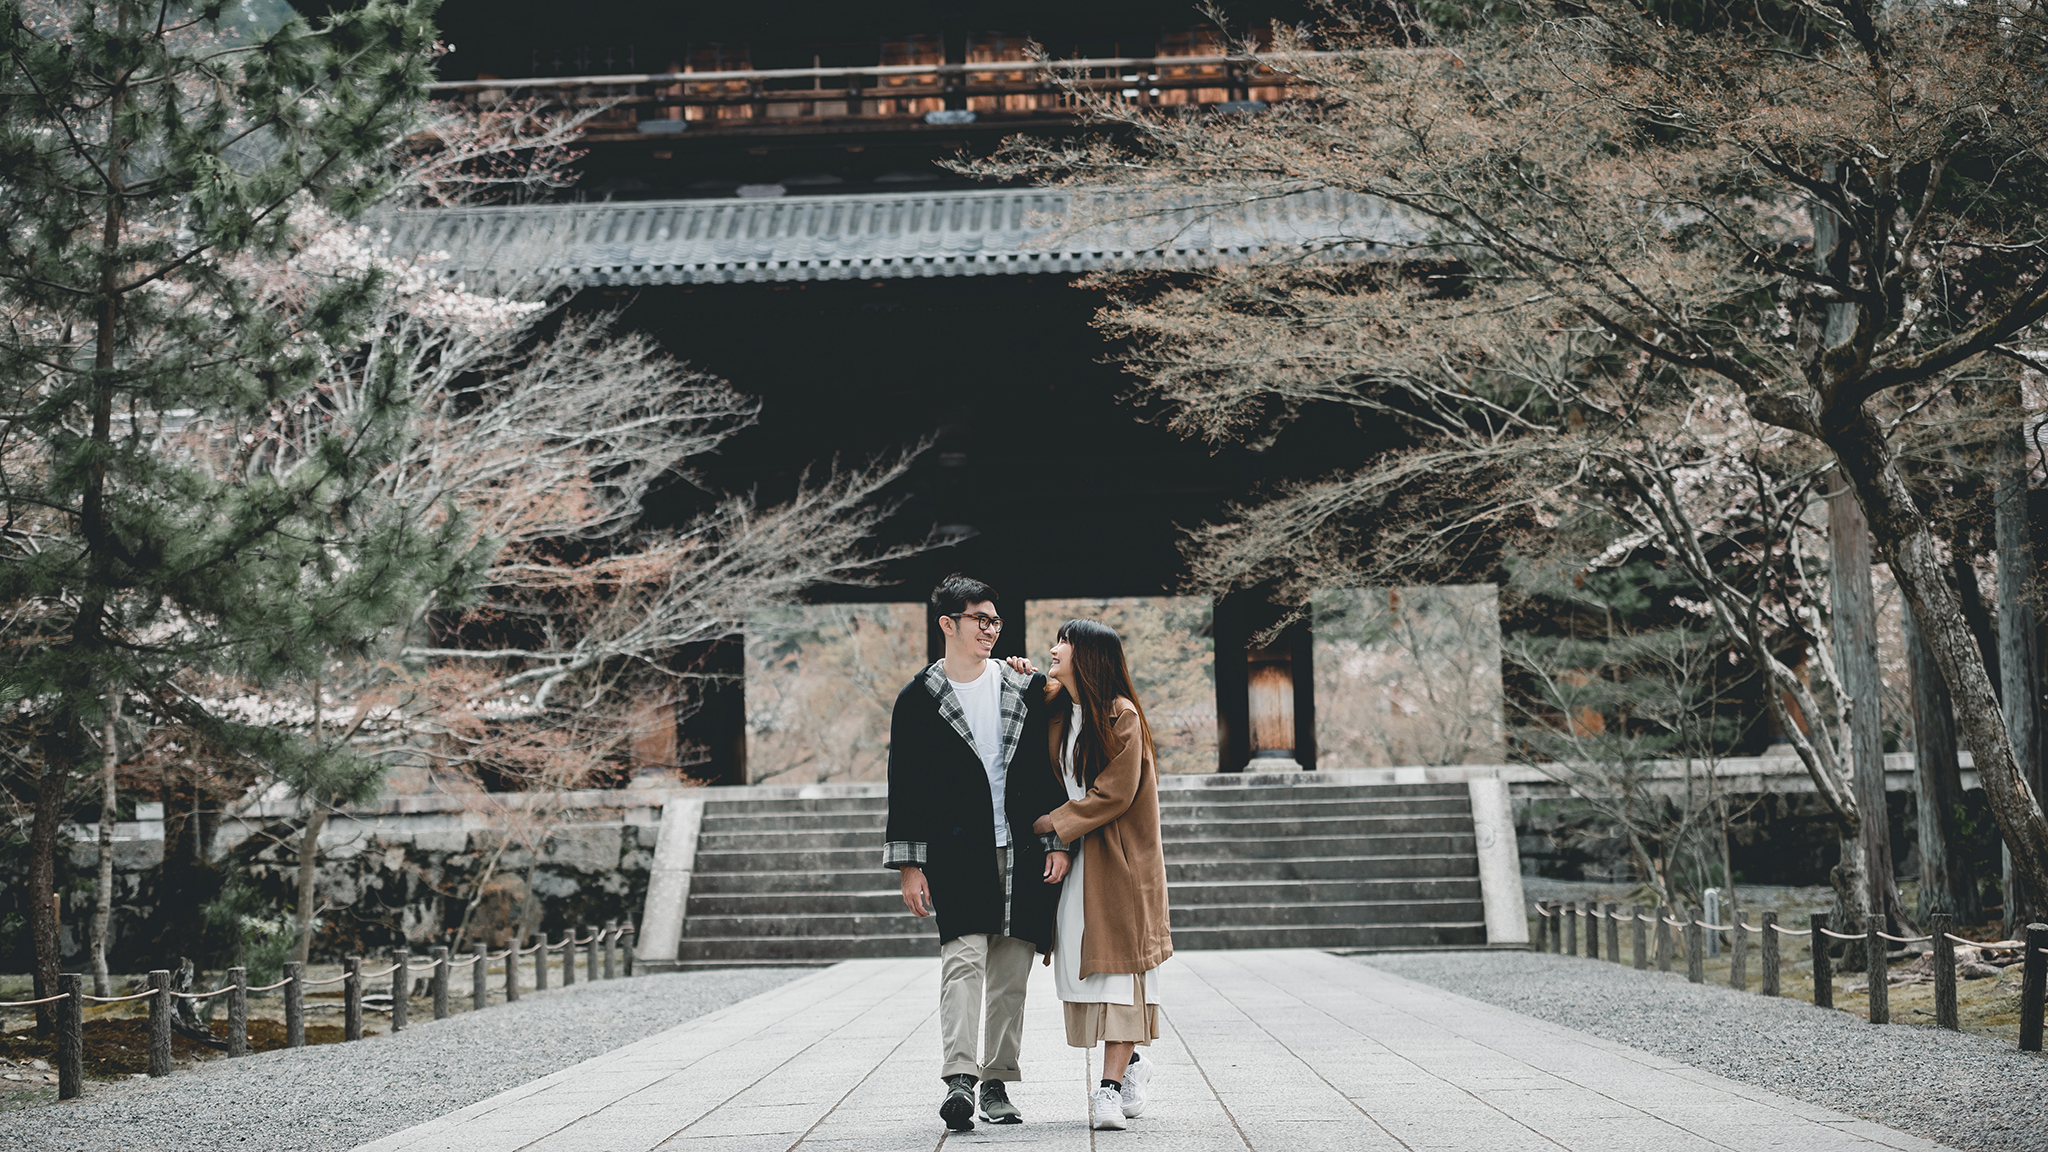 Prewedding Kyoto Keage Incline 00019.JPG